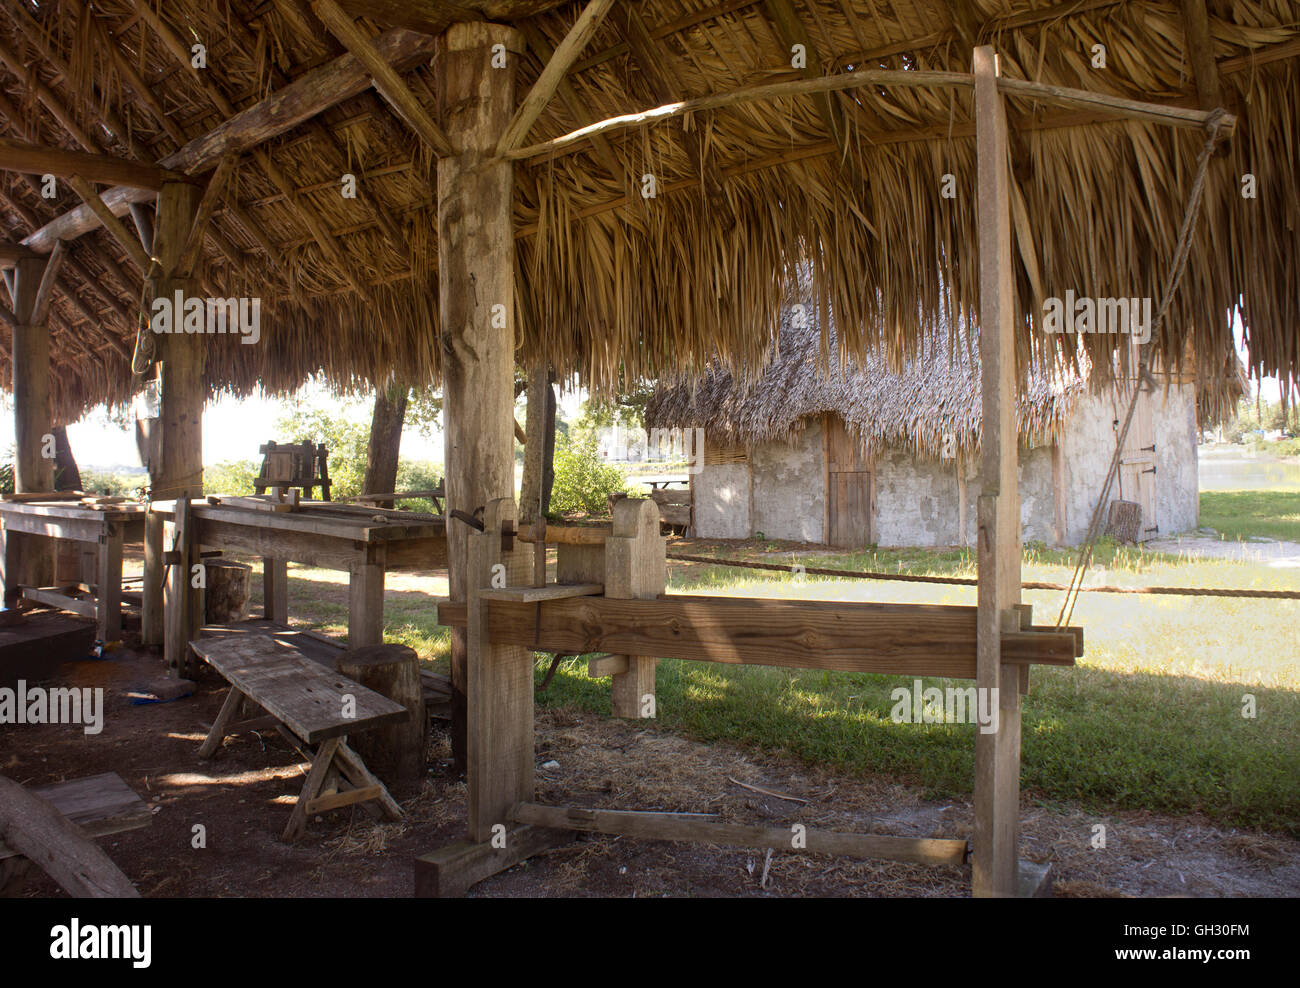 Pole lathe and other replica tools under a Timucua-style palm frond hut.  The Fountain of Youth Park, St. Augustine - Stock Image